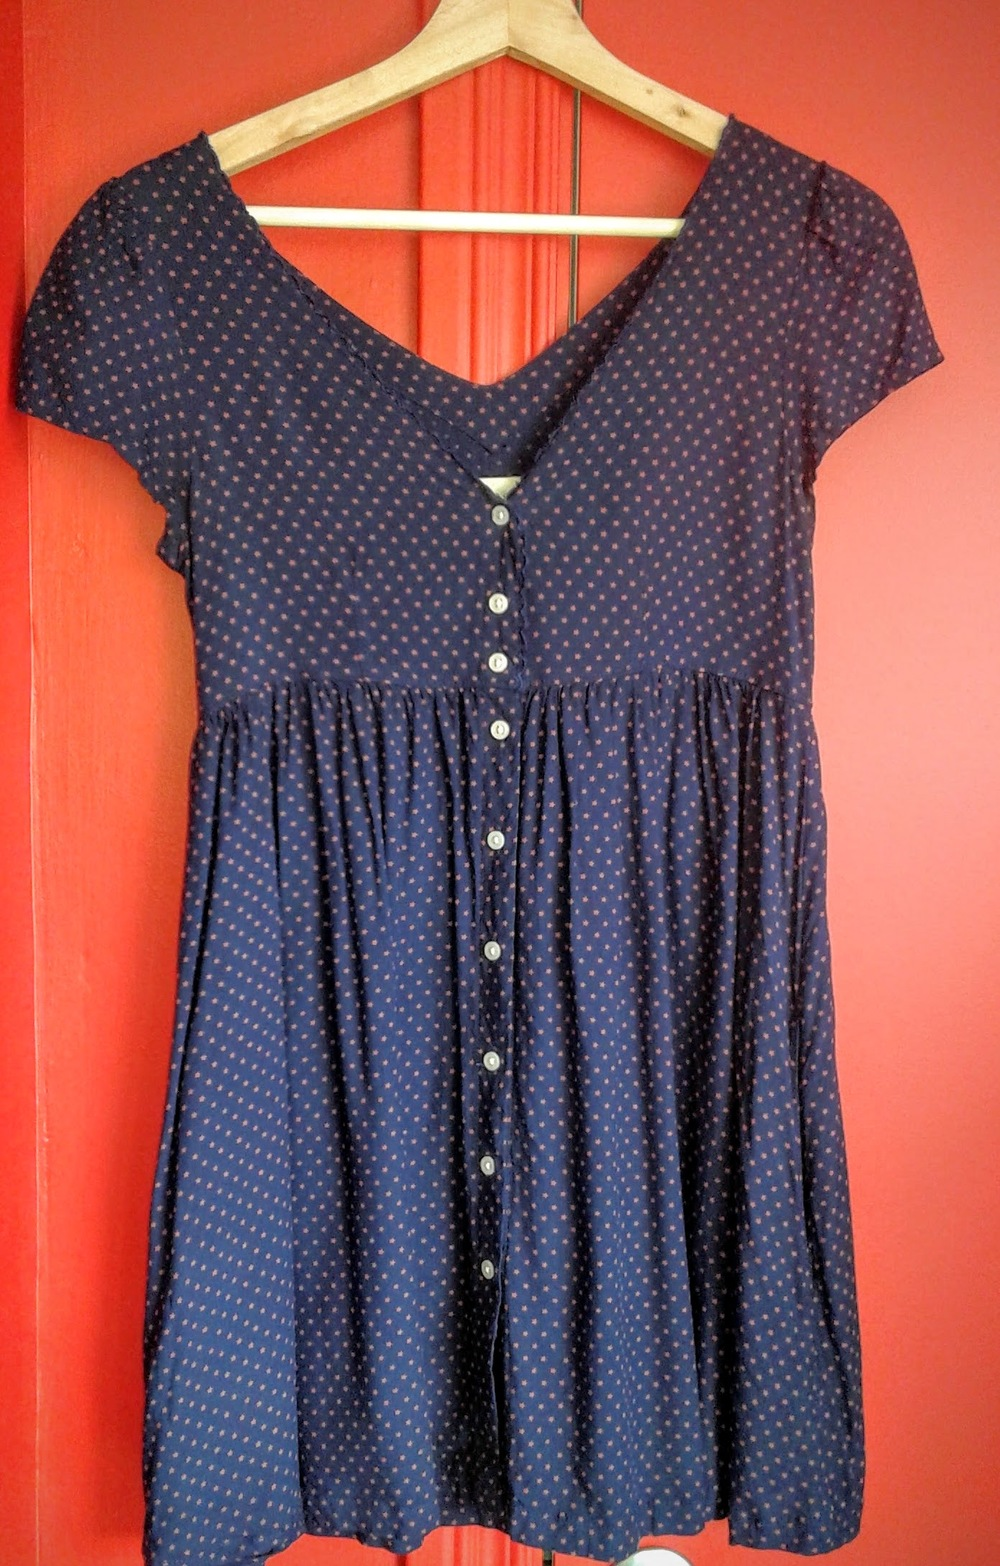 Denim&Supply Ralph Lauren dress; Size S, $28